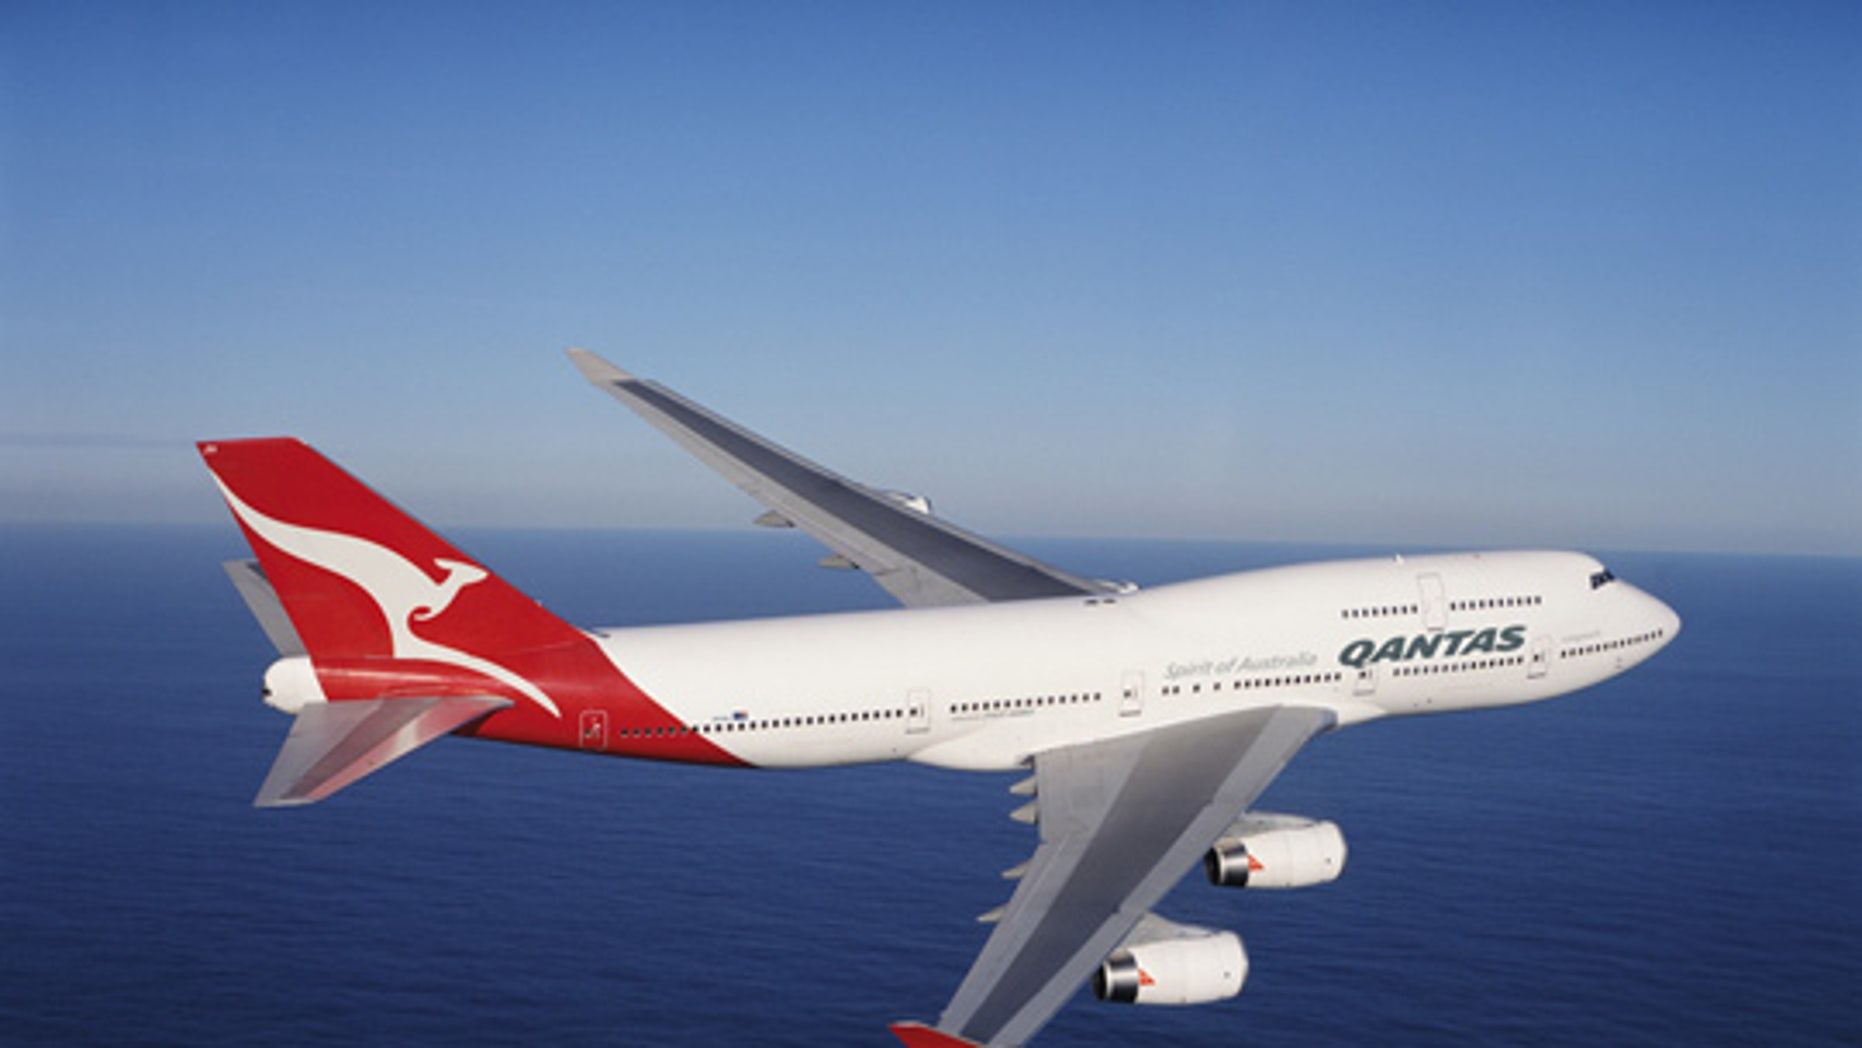 Australia's national carrier has been voted as the safest airline in the world.